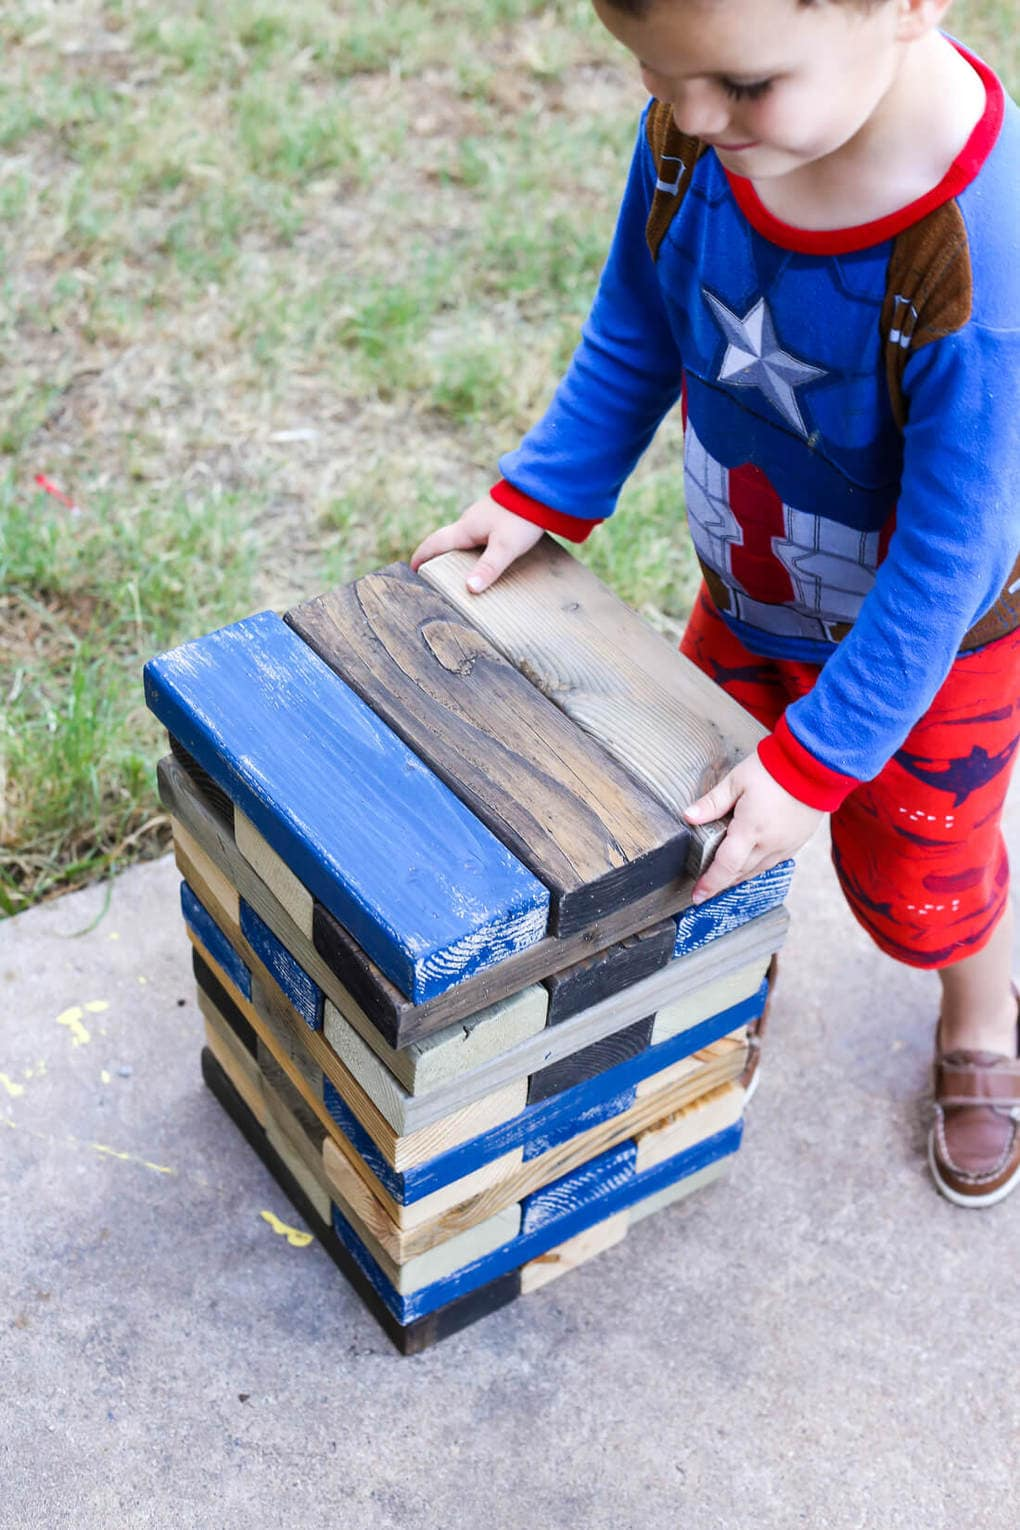 DIY Giant Jenga Outdoor Game - Fun party game. How to make jumbo Jenga blocks for your backyard, perfect for your next summer gathering, tailgate party, or just to keep your kids busy this summer!